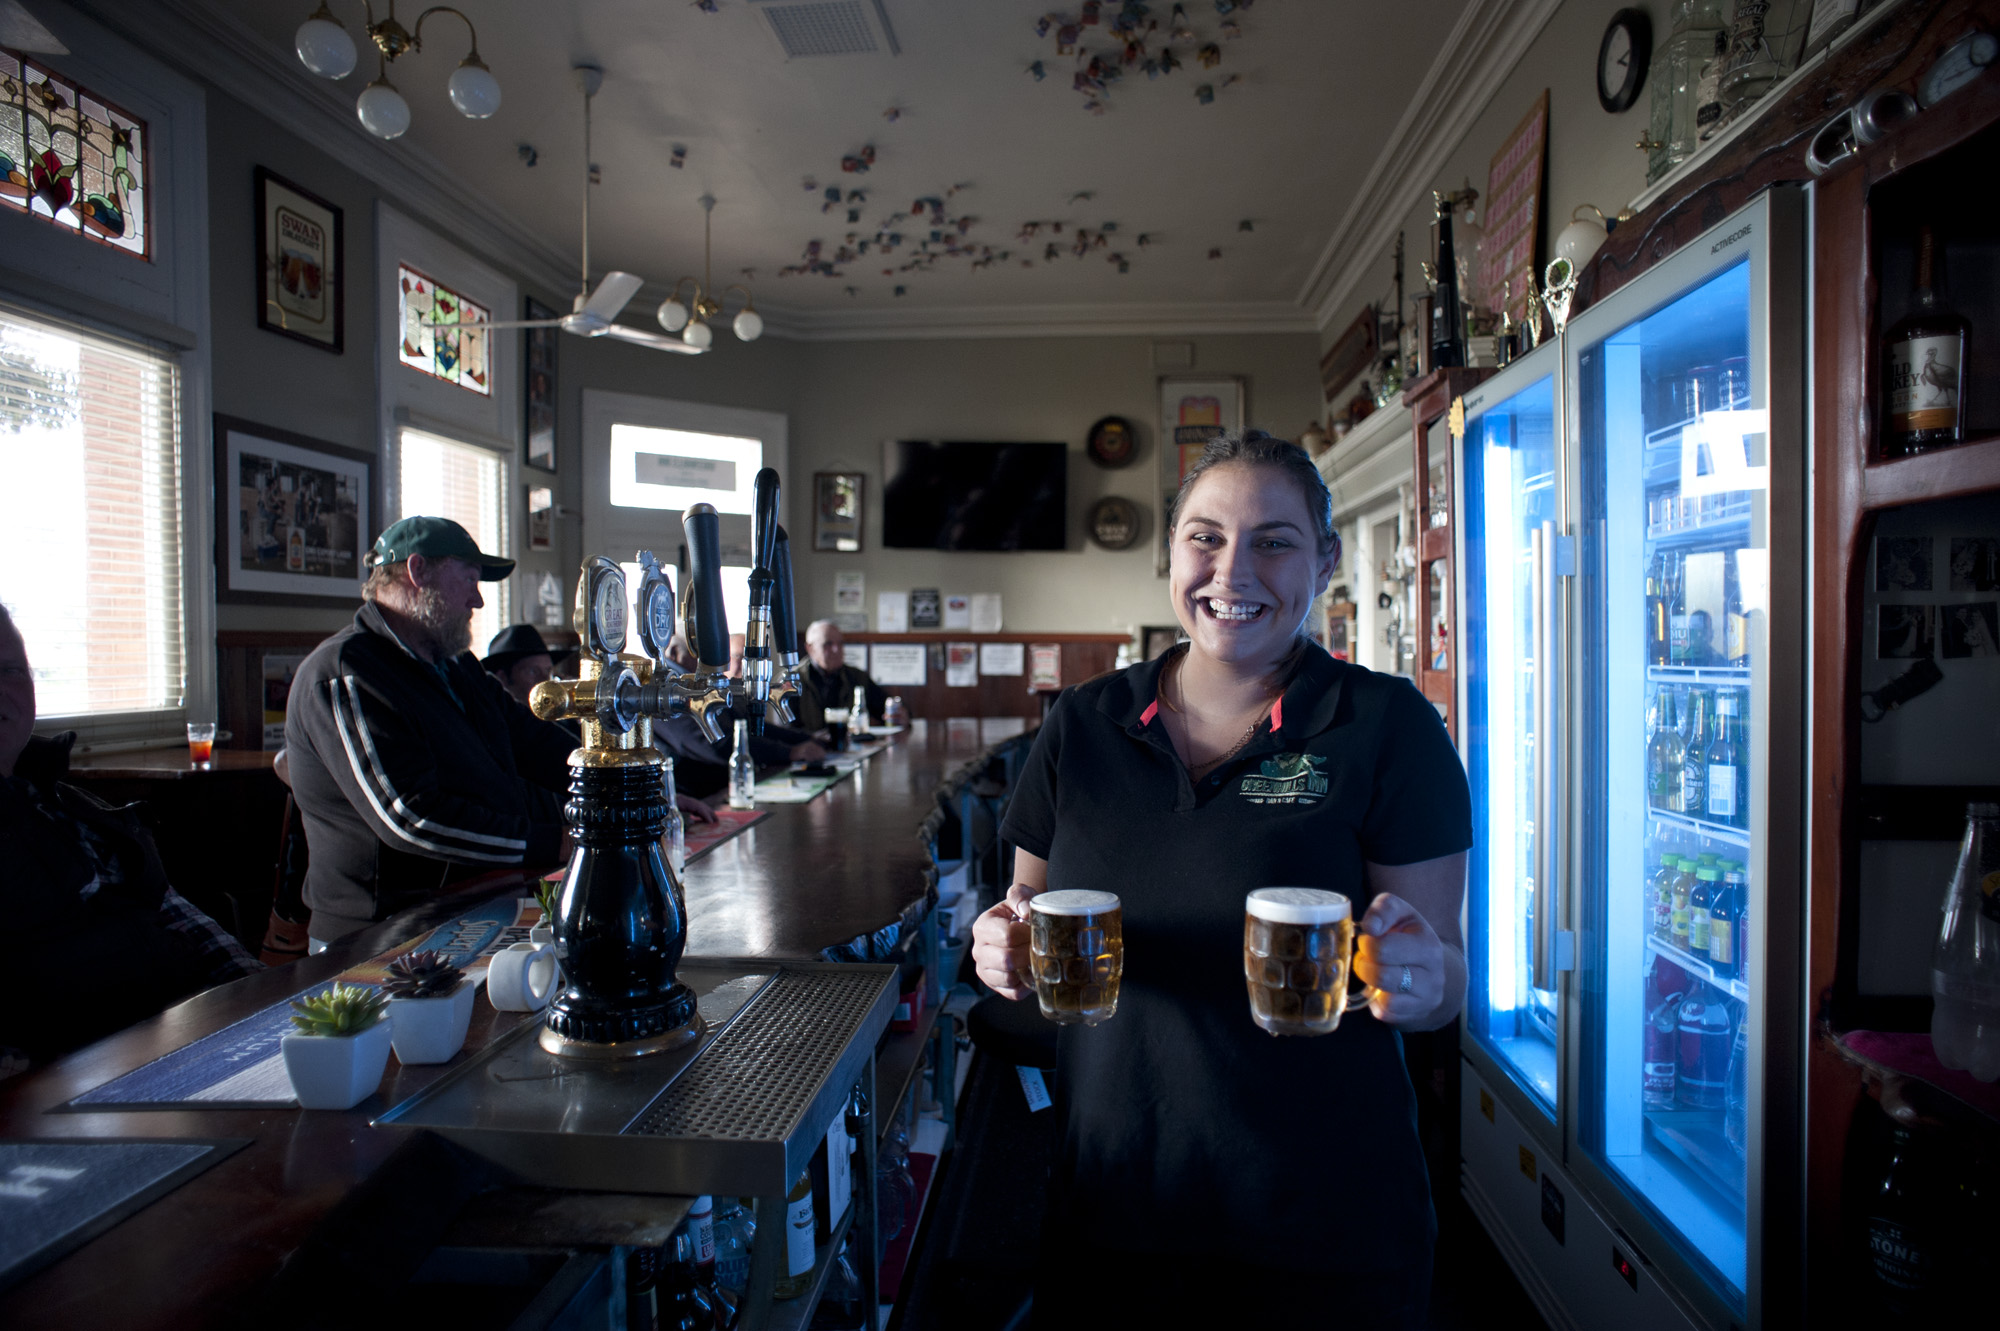 Bar maid with beers in bar.jpg